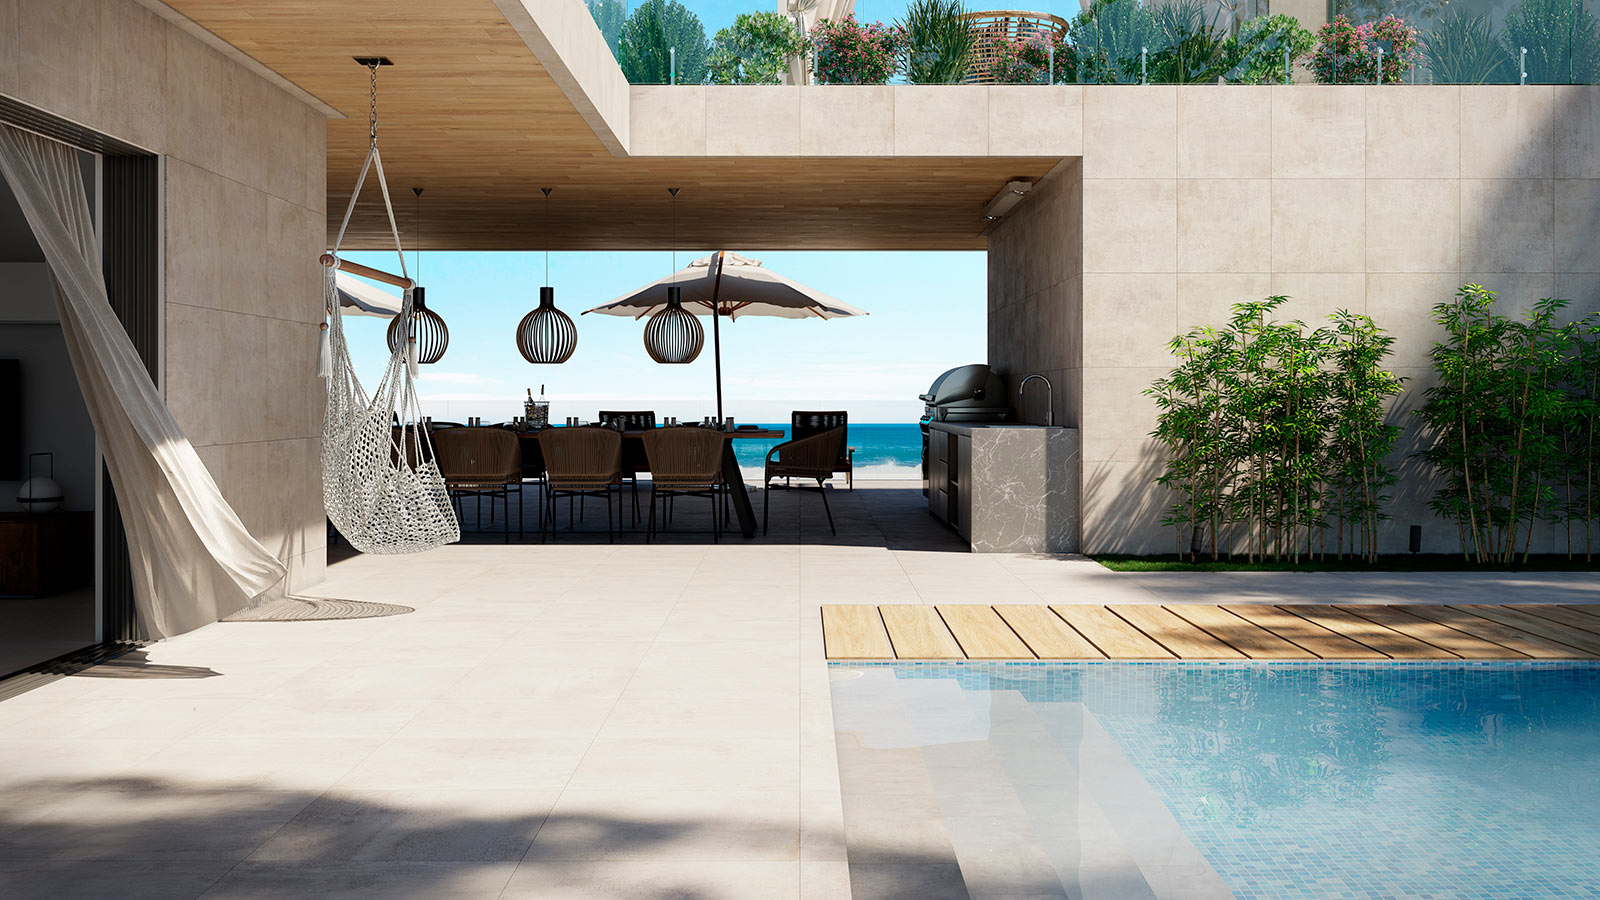 Ideas for decorating the terrace and how to prepare it for the summer